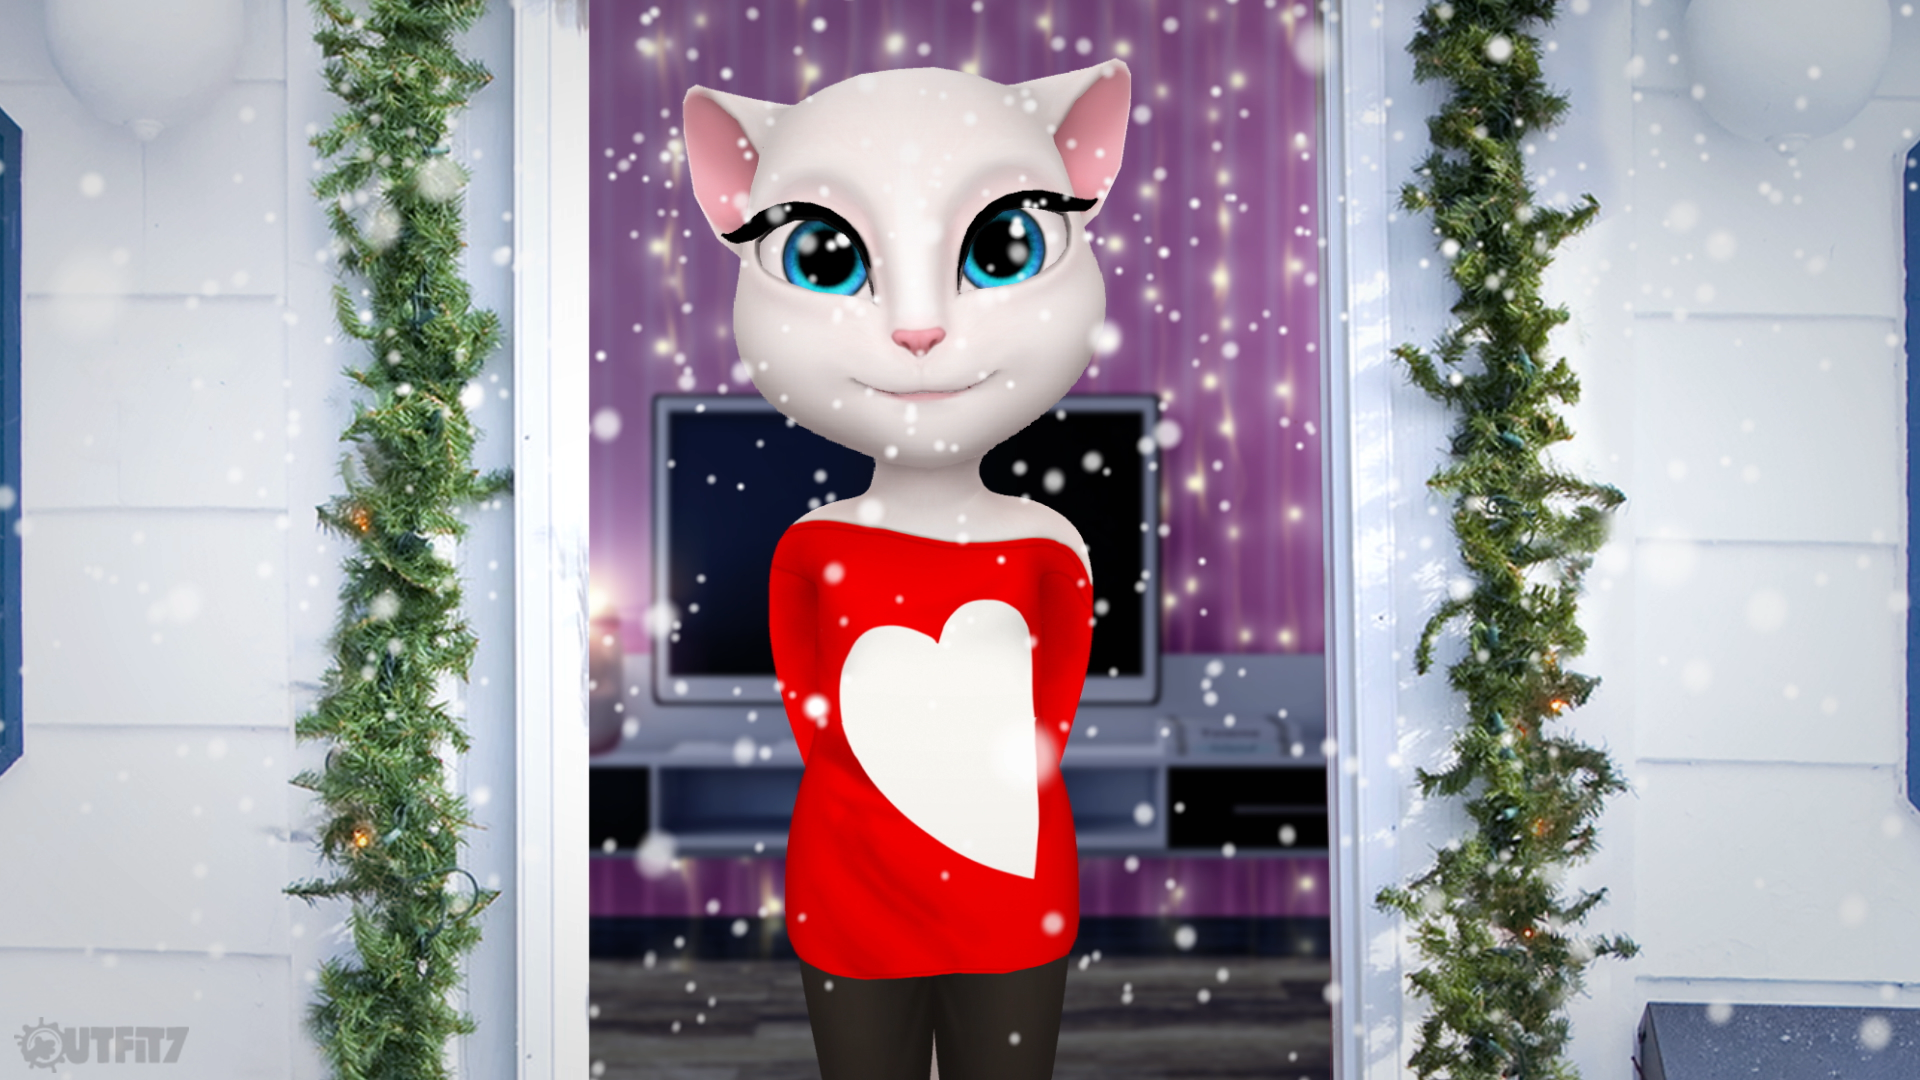 My new app, My Talking Angela, is fabulous! Check out my stylish outfits